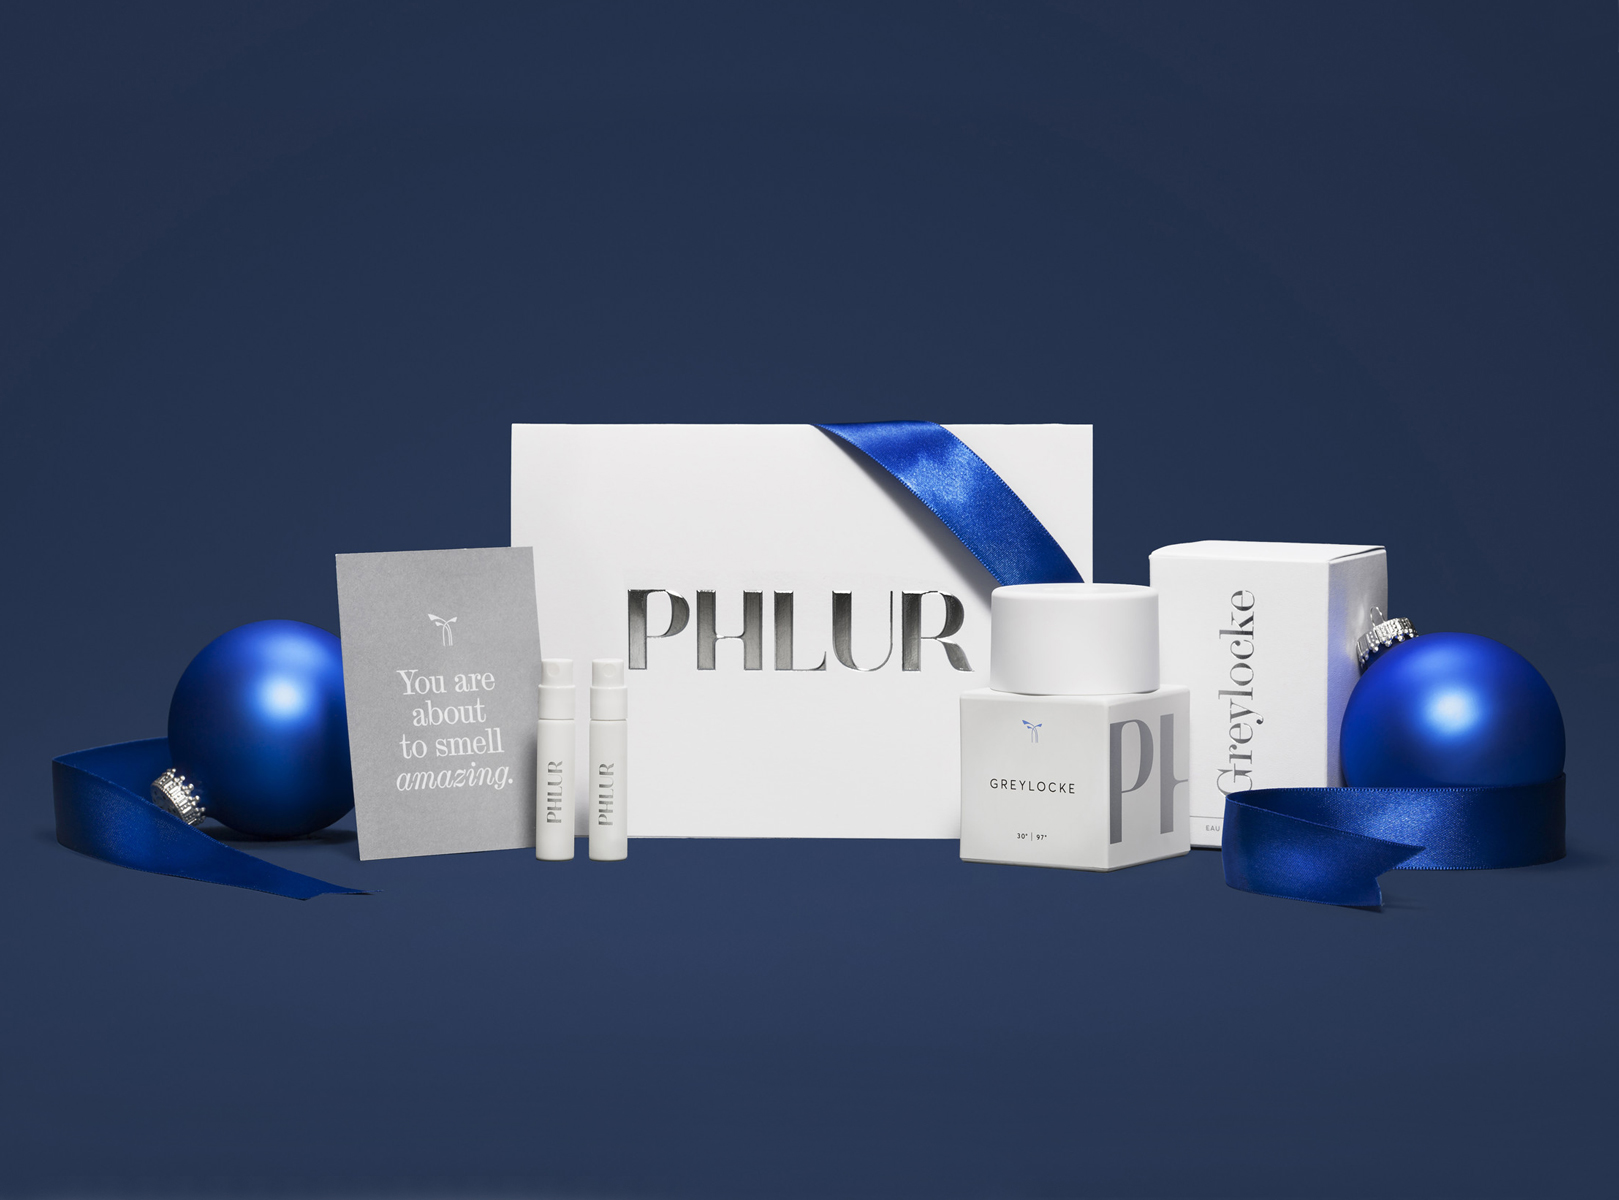 Phlur The Quintessential Gift